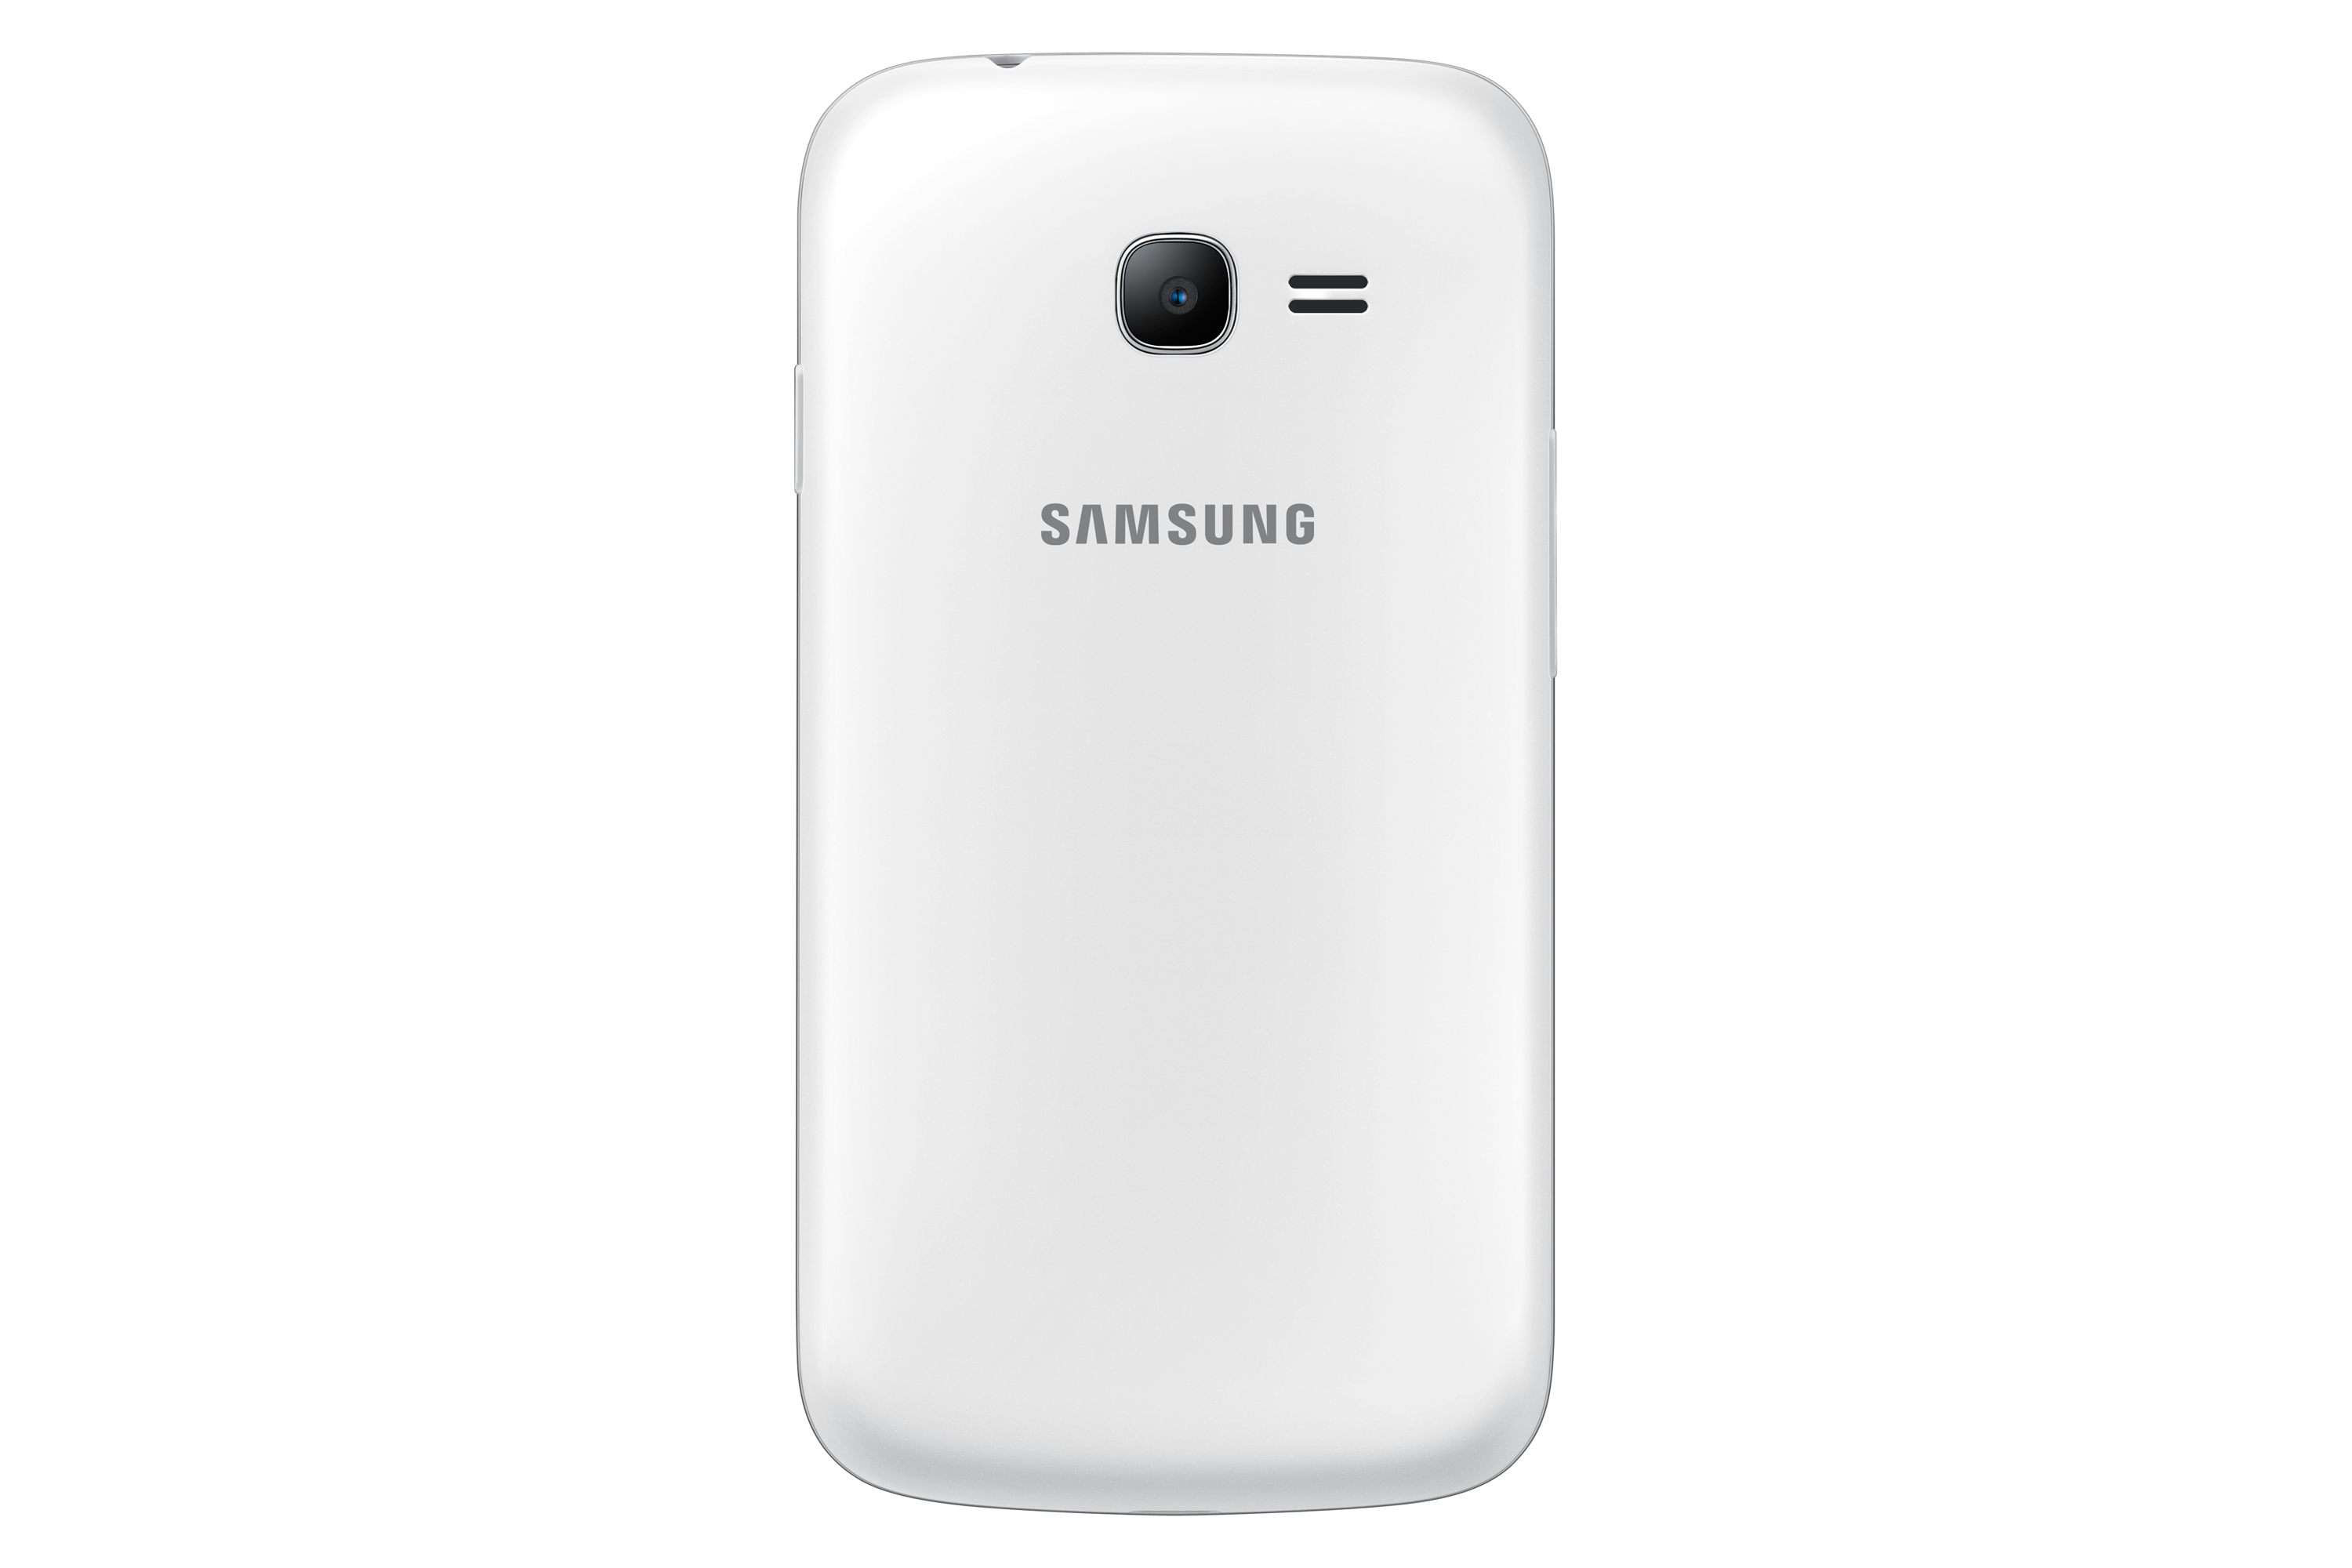 810f98973e468 Смартфон Samsung Galaxy Star Plus GT-S7262 DUOS 4Gb White — фото 3 / 5 ...